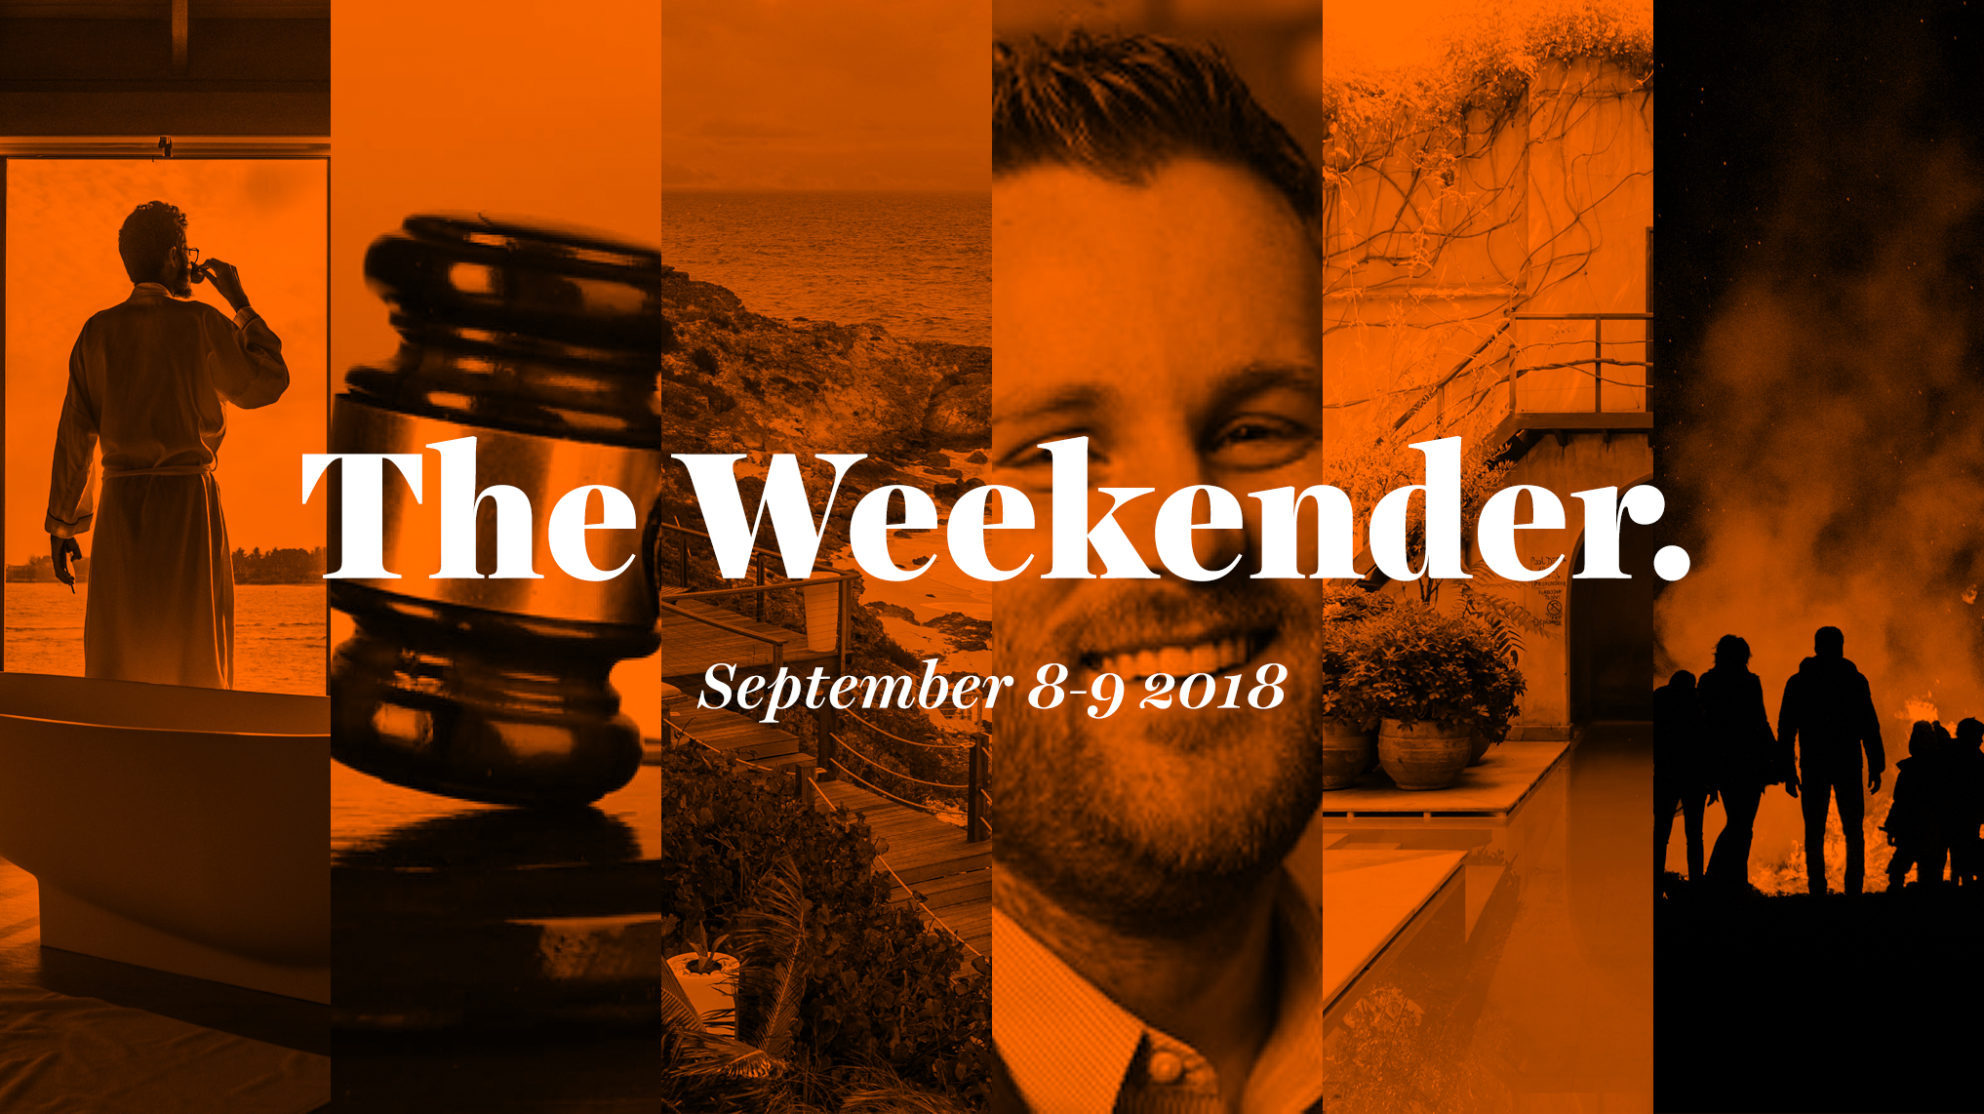 The Inman Weekender, September 8-9, 2018